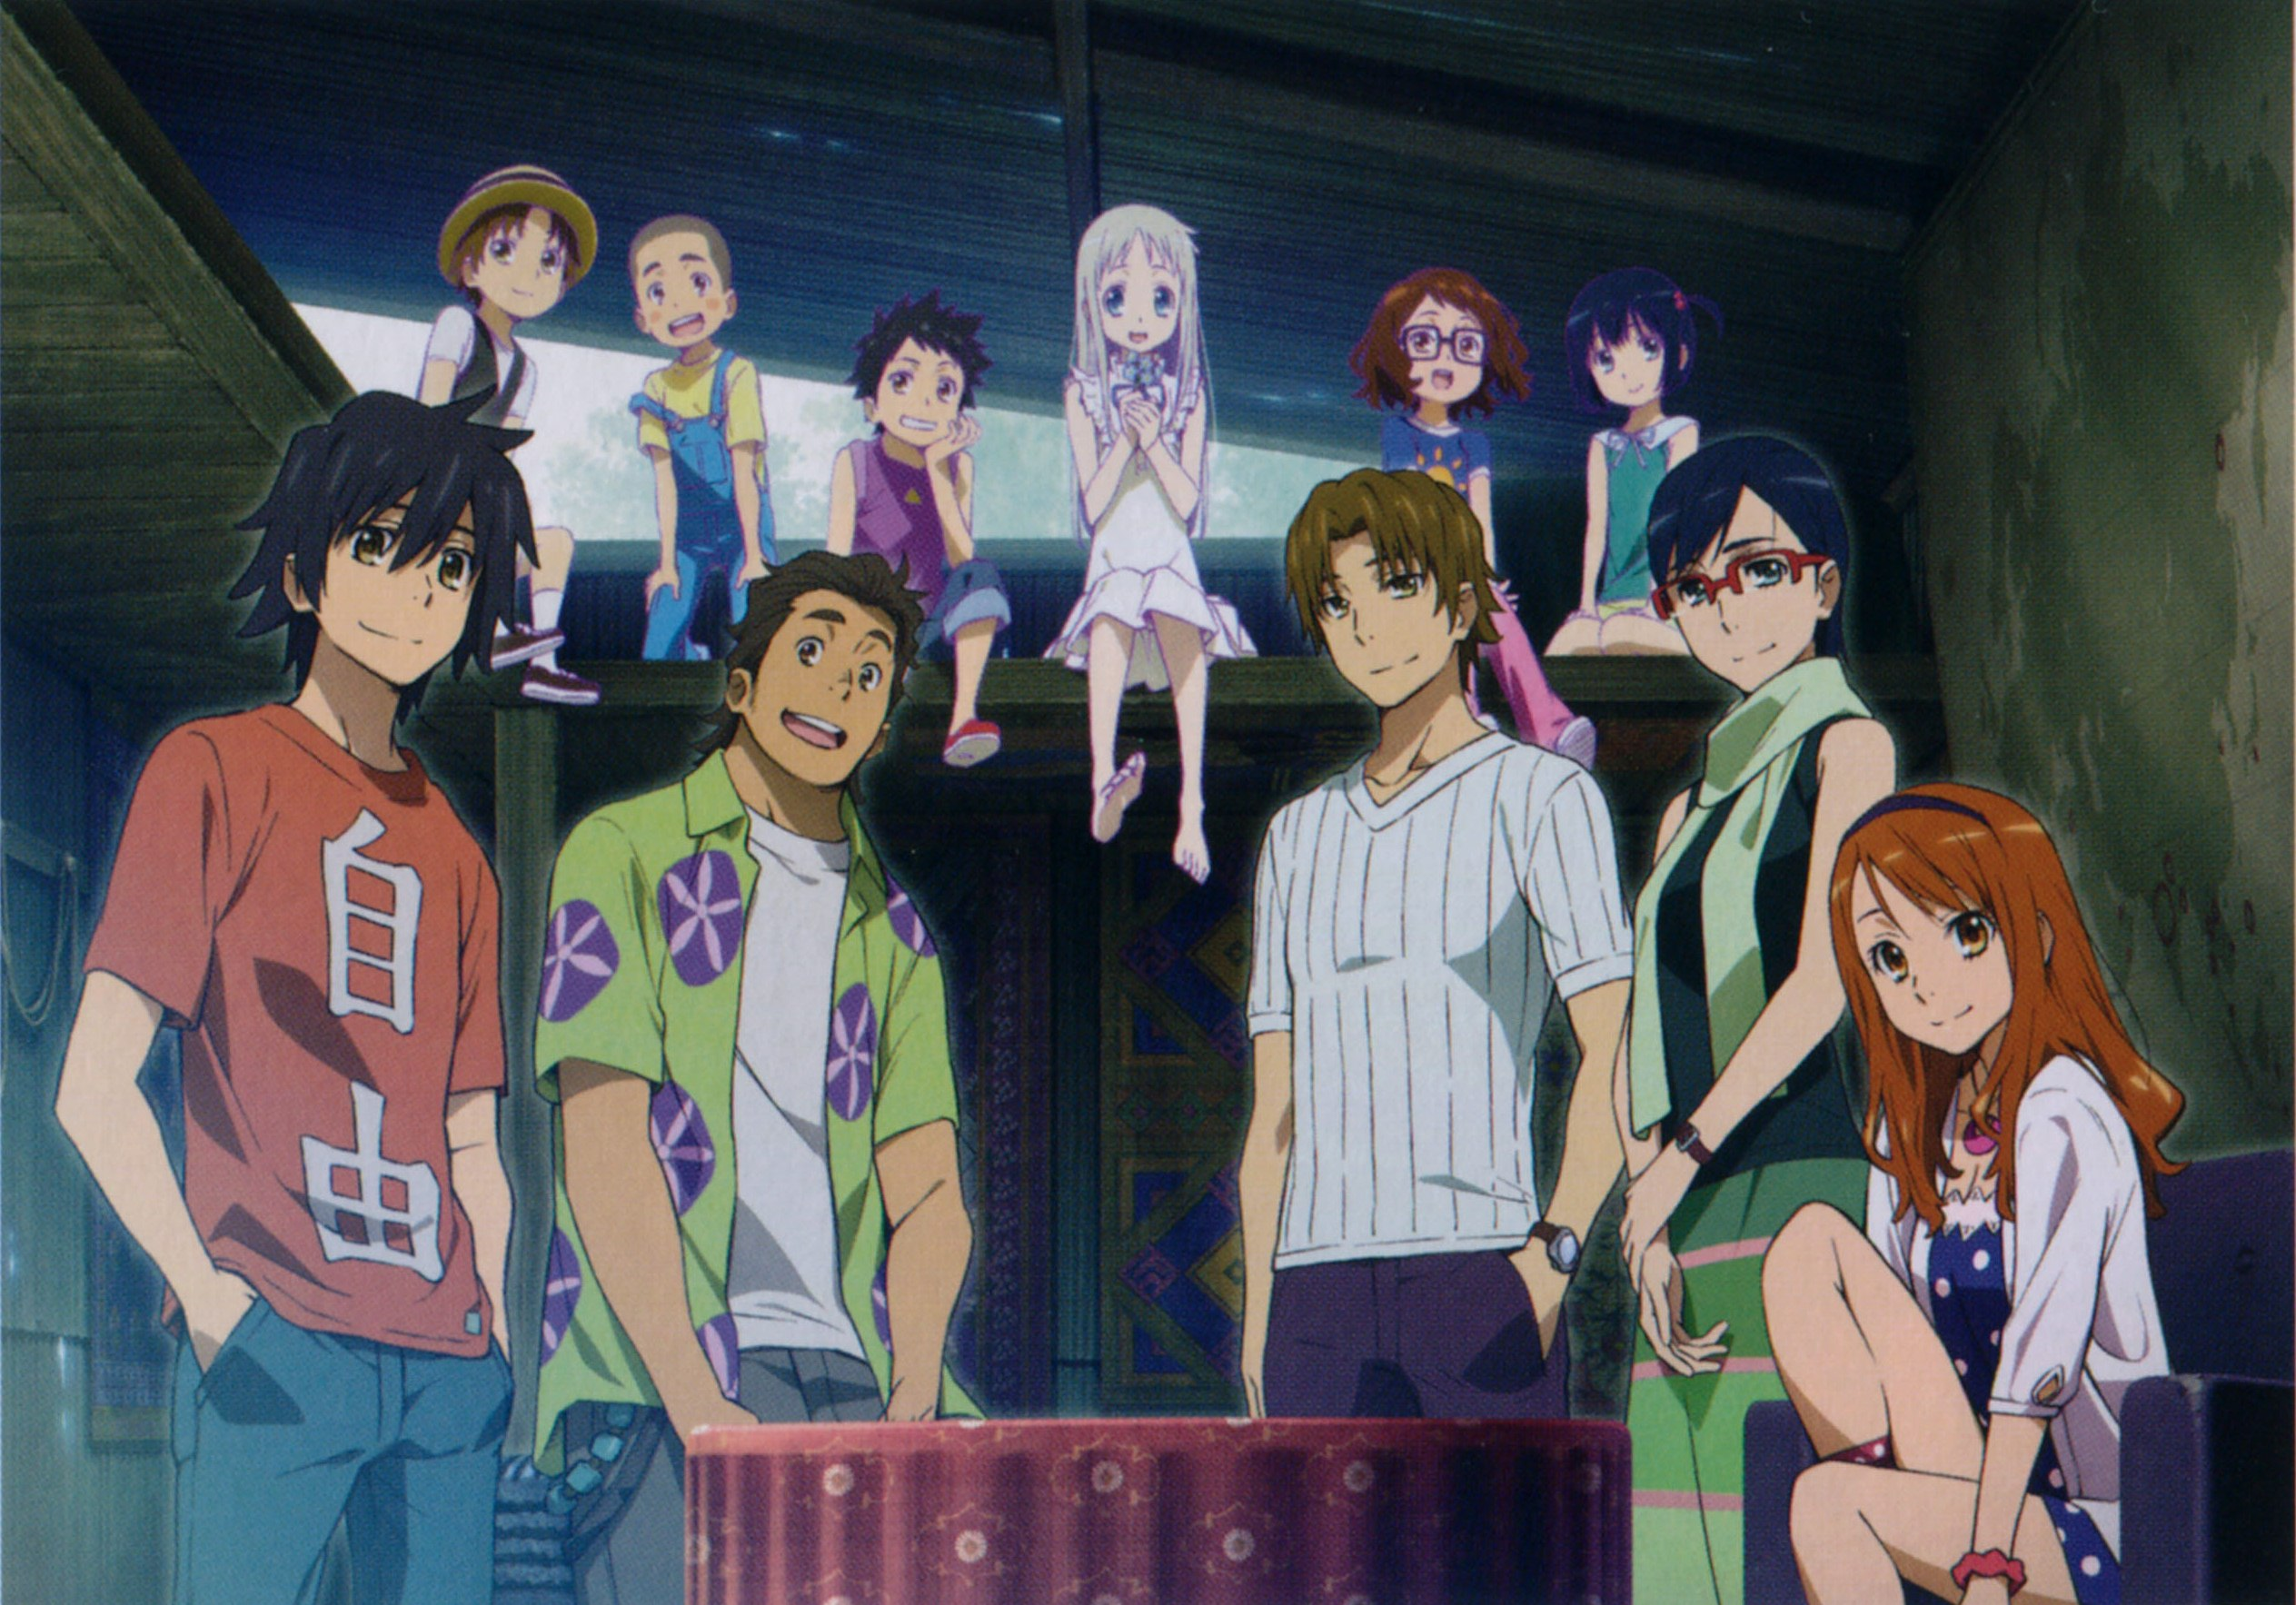 Emo Girl Wallpaper For Facebook Profile Anohana Hd Wallpaper Background Image 2527x1767 Id